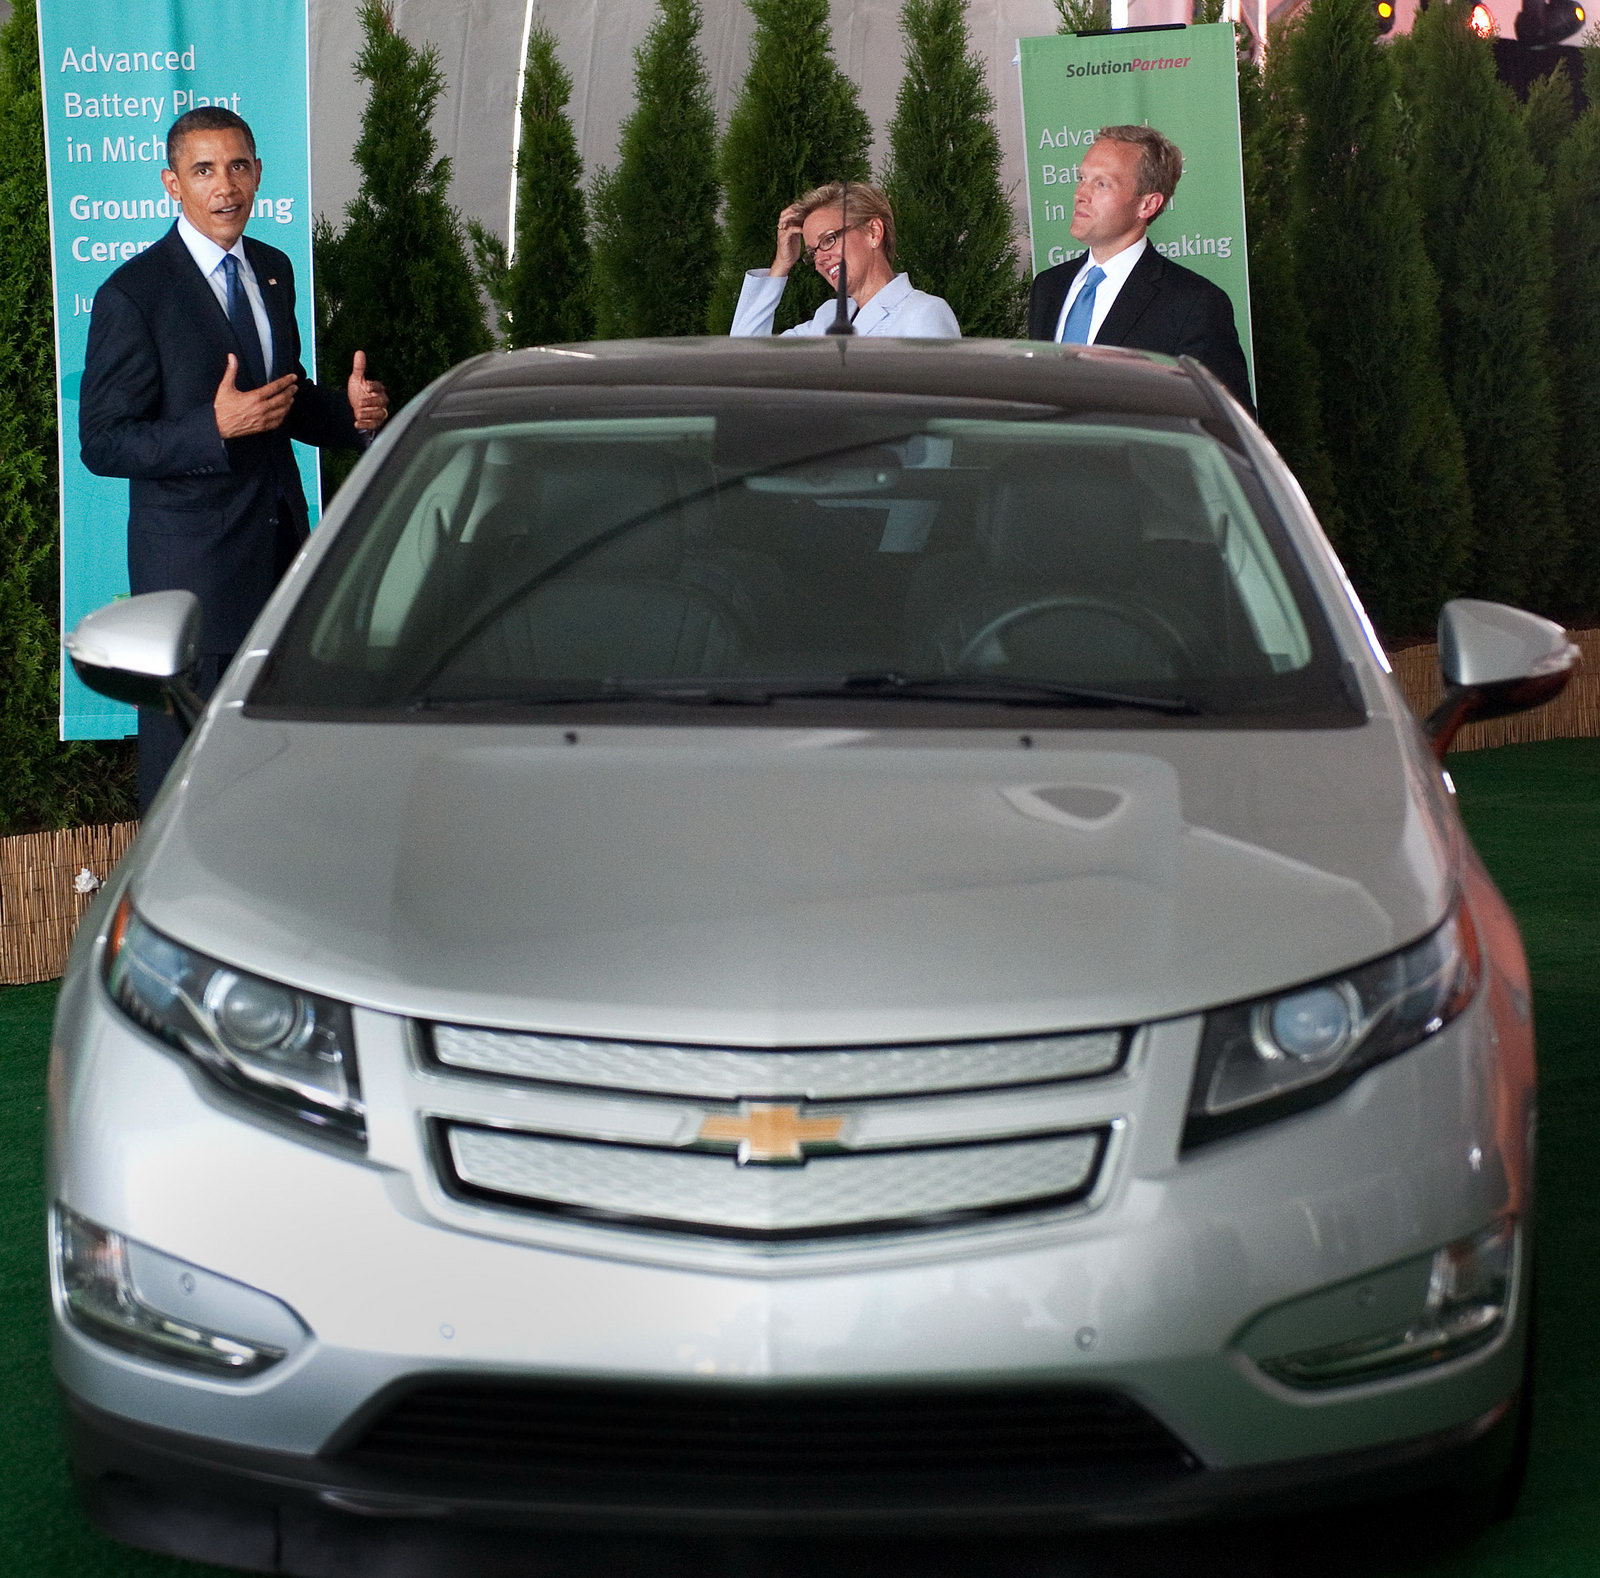 Obama Speaks At New Battery Plant, Tries Out Chevy Volt